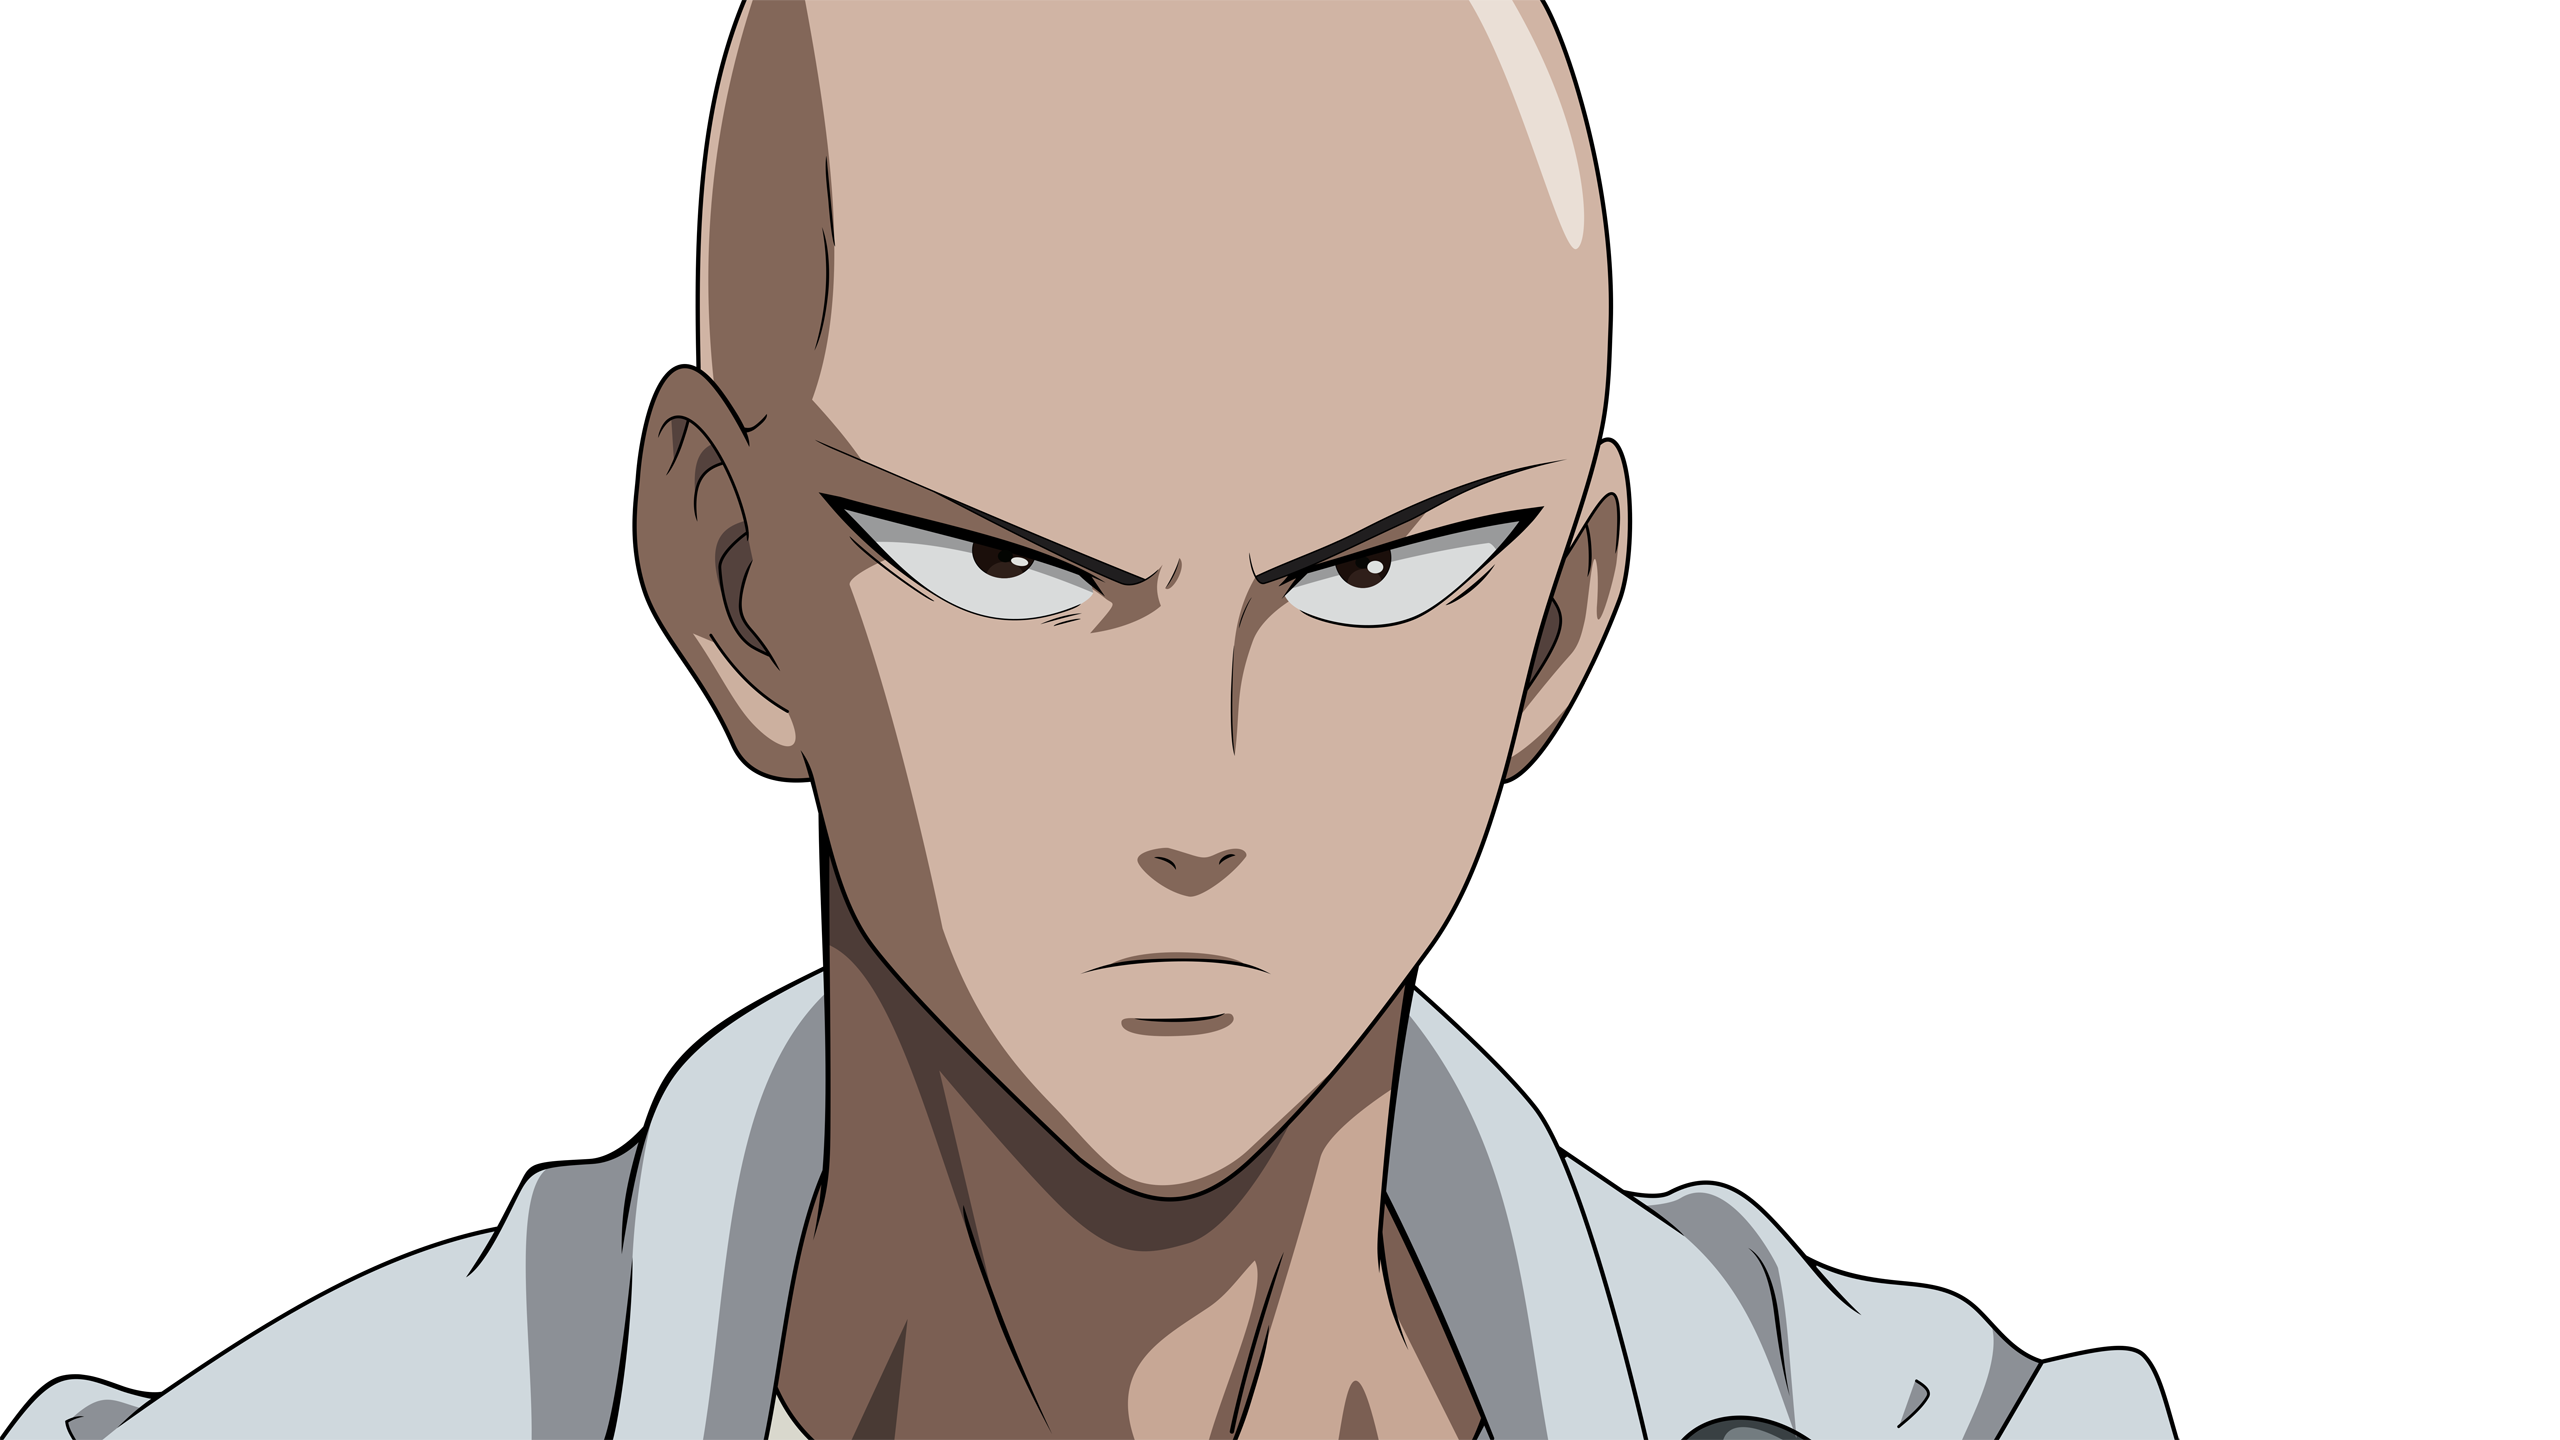 Saitama Cool Face One Punch Man Hd Wallpaper Id 7274 Download Page Animasi Wallpaper Ponsel